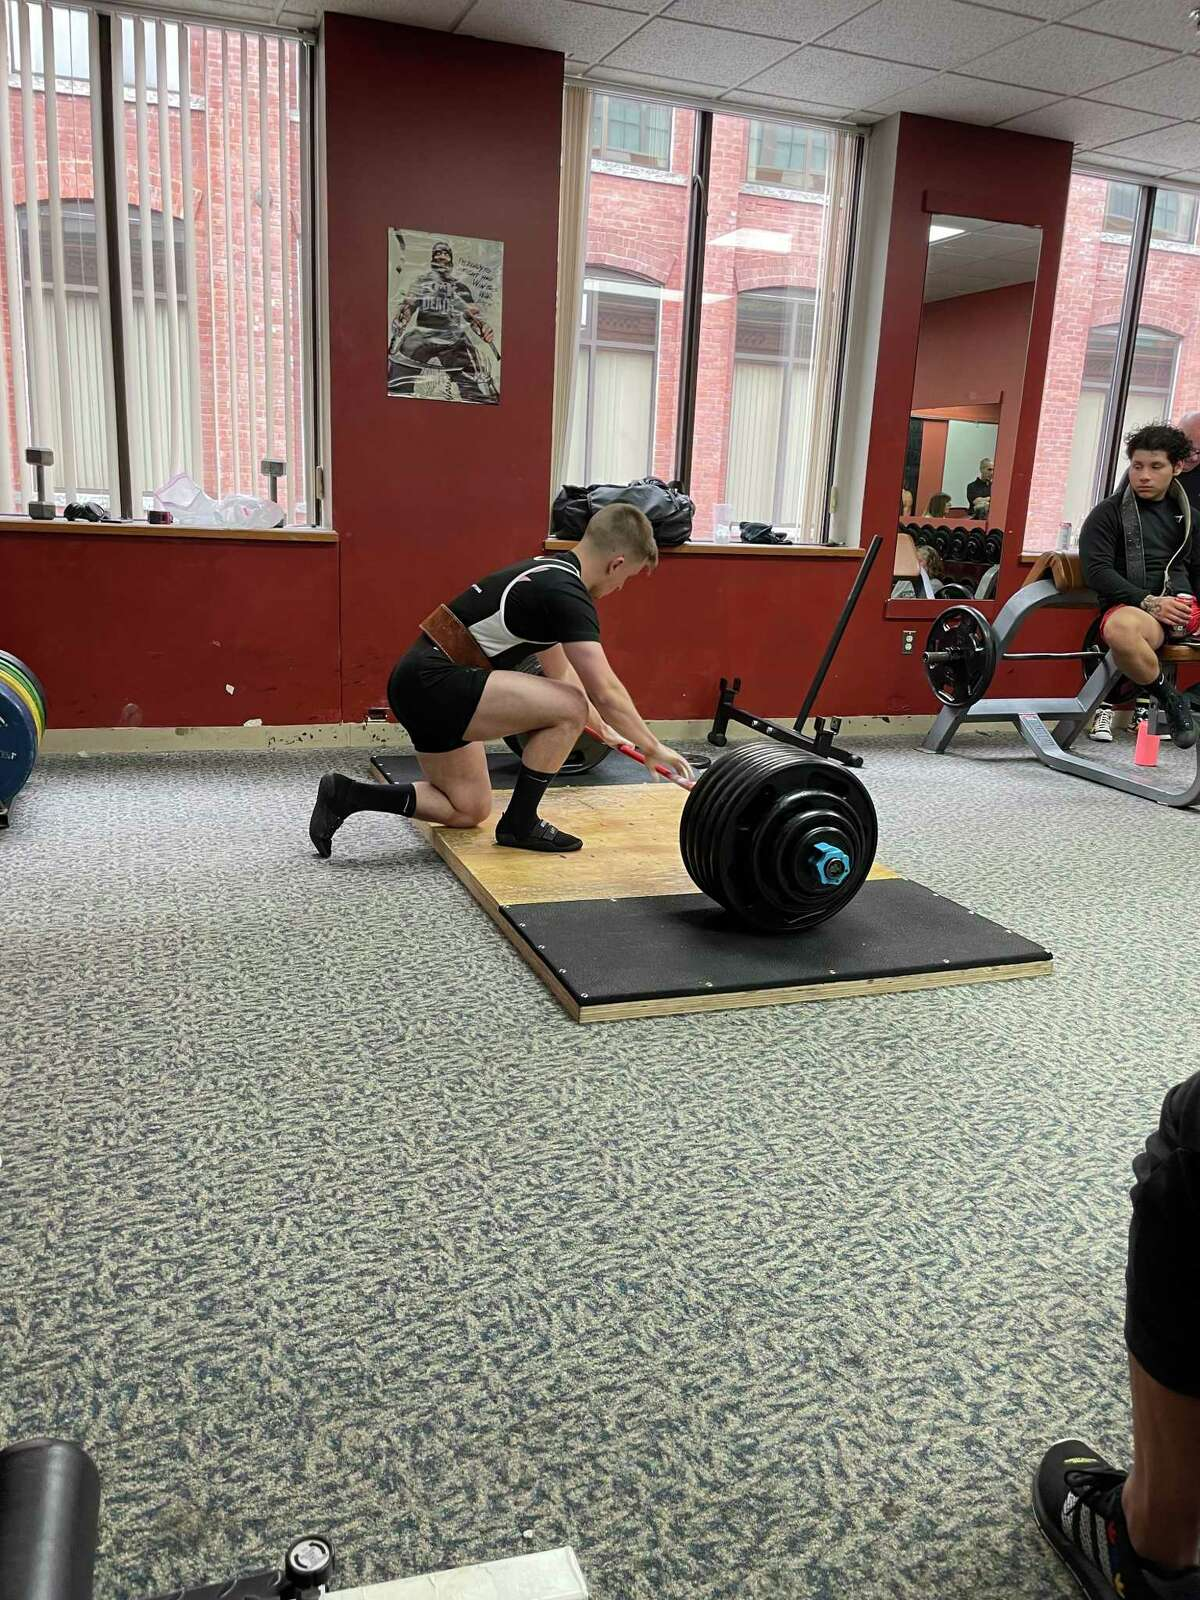 Energy Fitness Factory, 59 Field St., Torrington, launched its fall food drive for FISH with a weight lifting competition. The drive continues through October. Nick Sparks was the winner of the men's competition.